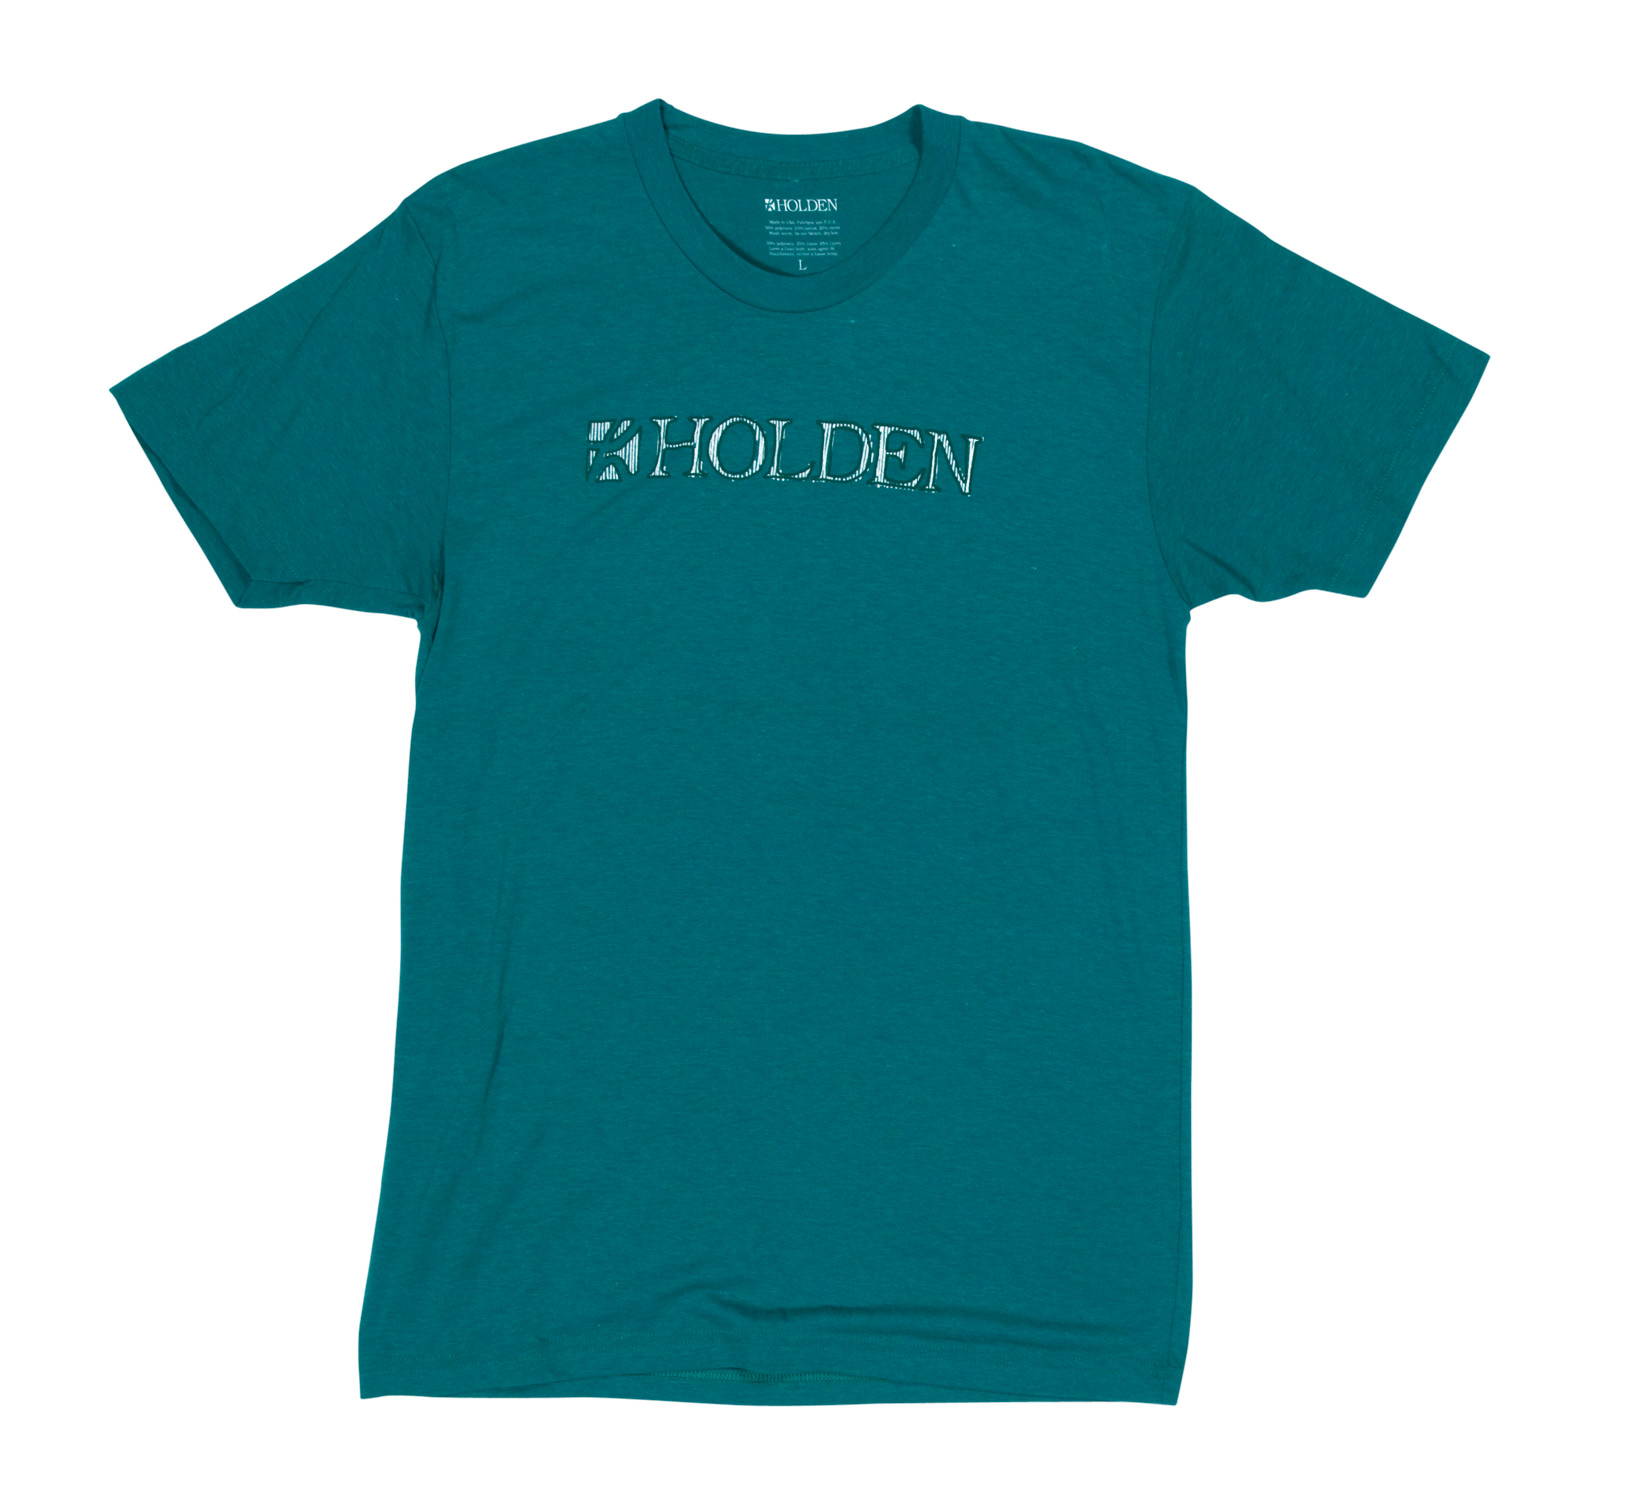 Holden Bookman T-Shirt - $11.95